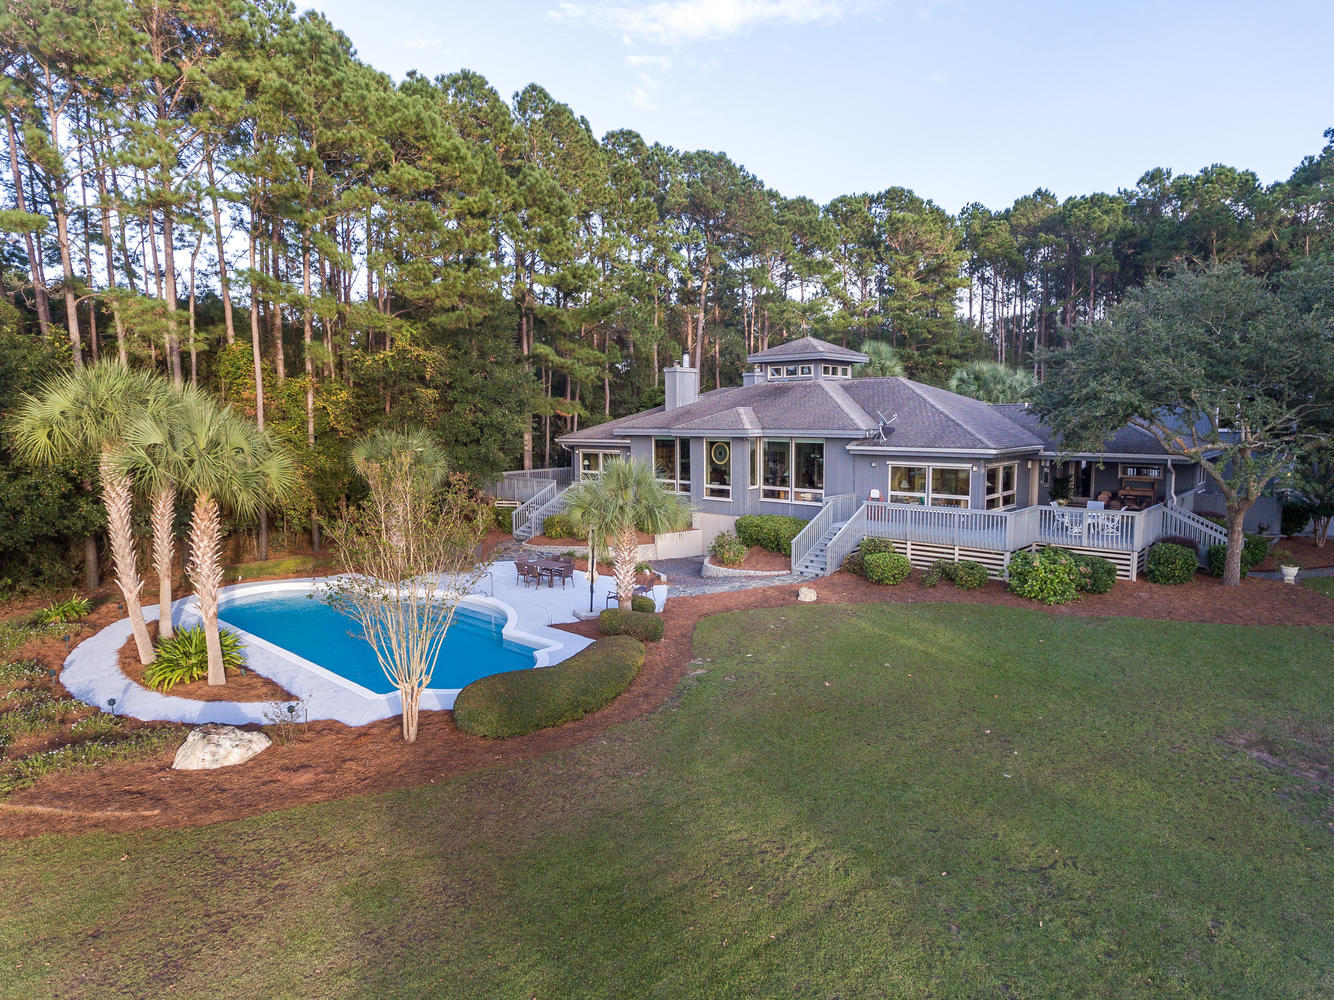 Photo of 3212 Bohicket Rd, Johns Island, SC 29455